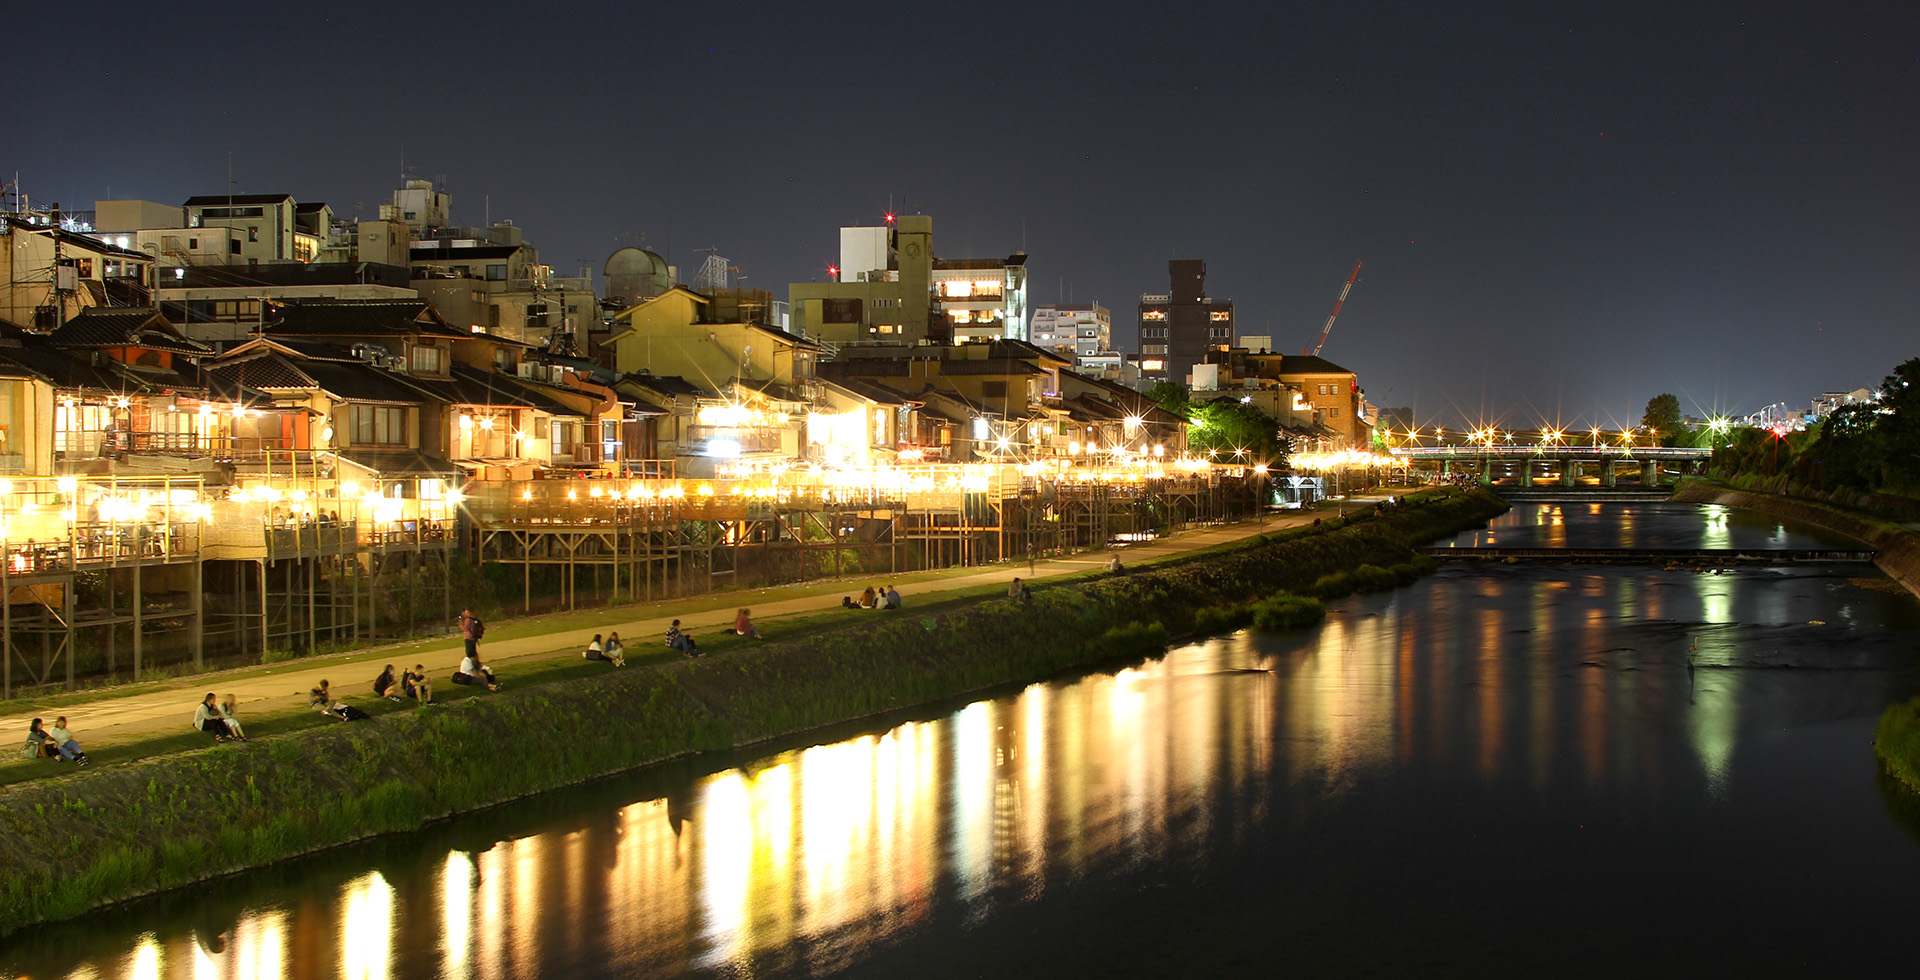 Kyoto by the river